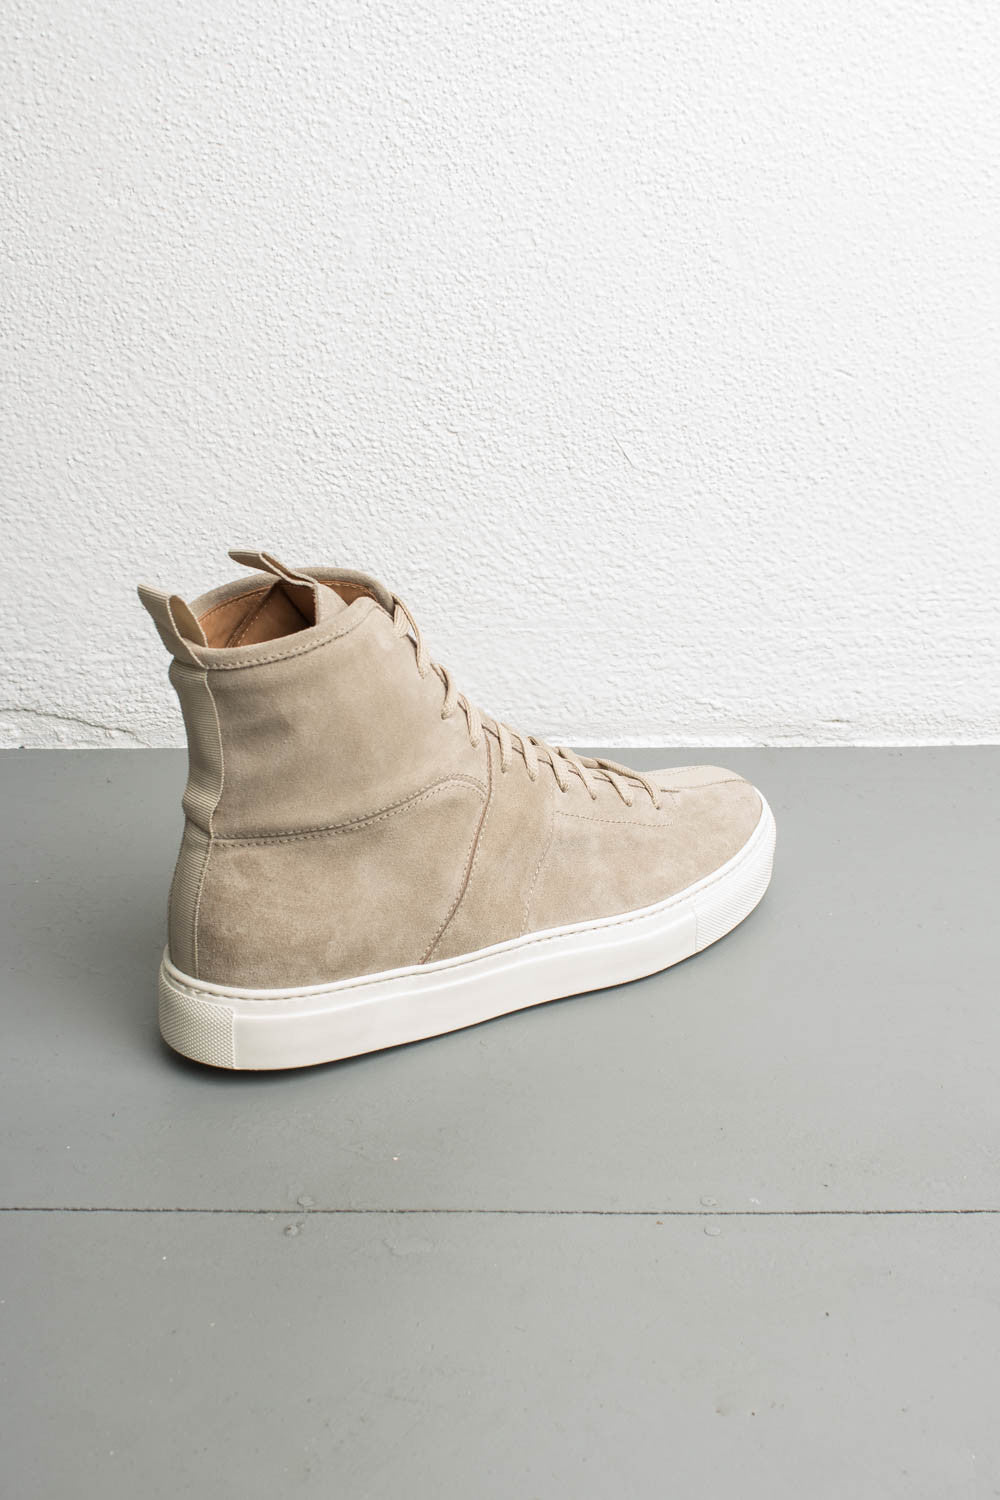 0a10e242f76d7 ... designer high tops by daniel patrick ...